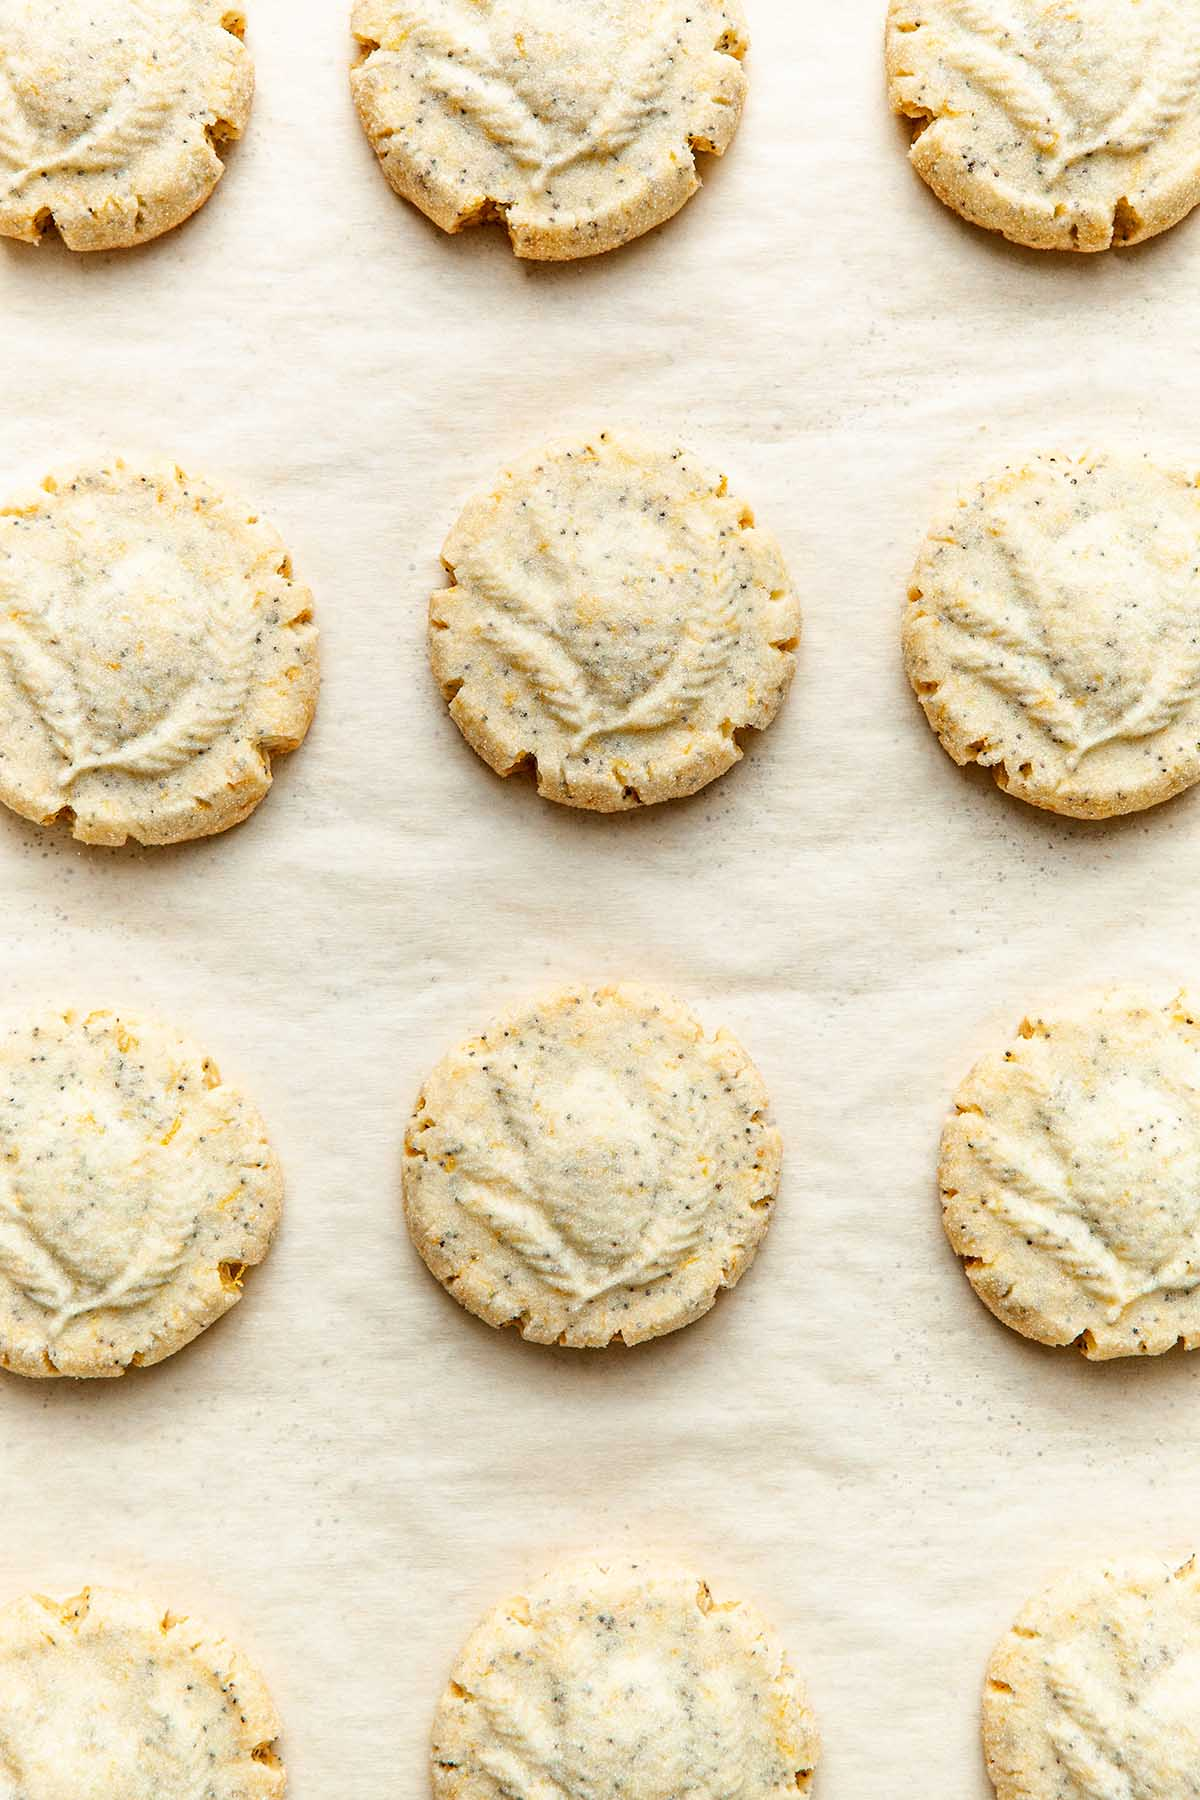 Overhead image of baked lemon poppy seed shortbread cookies on a parchment paper lined cookie sheet.